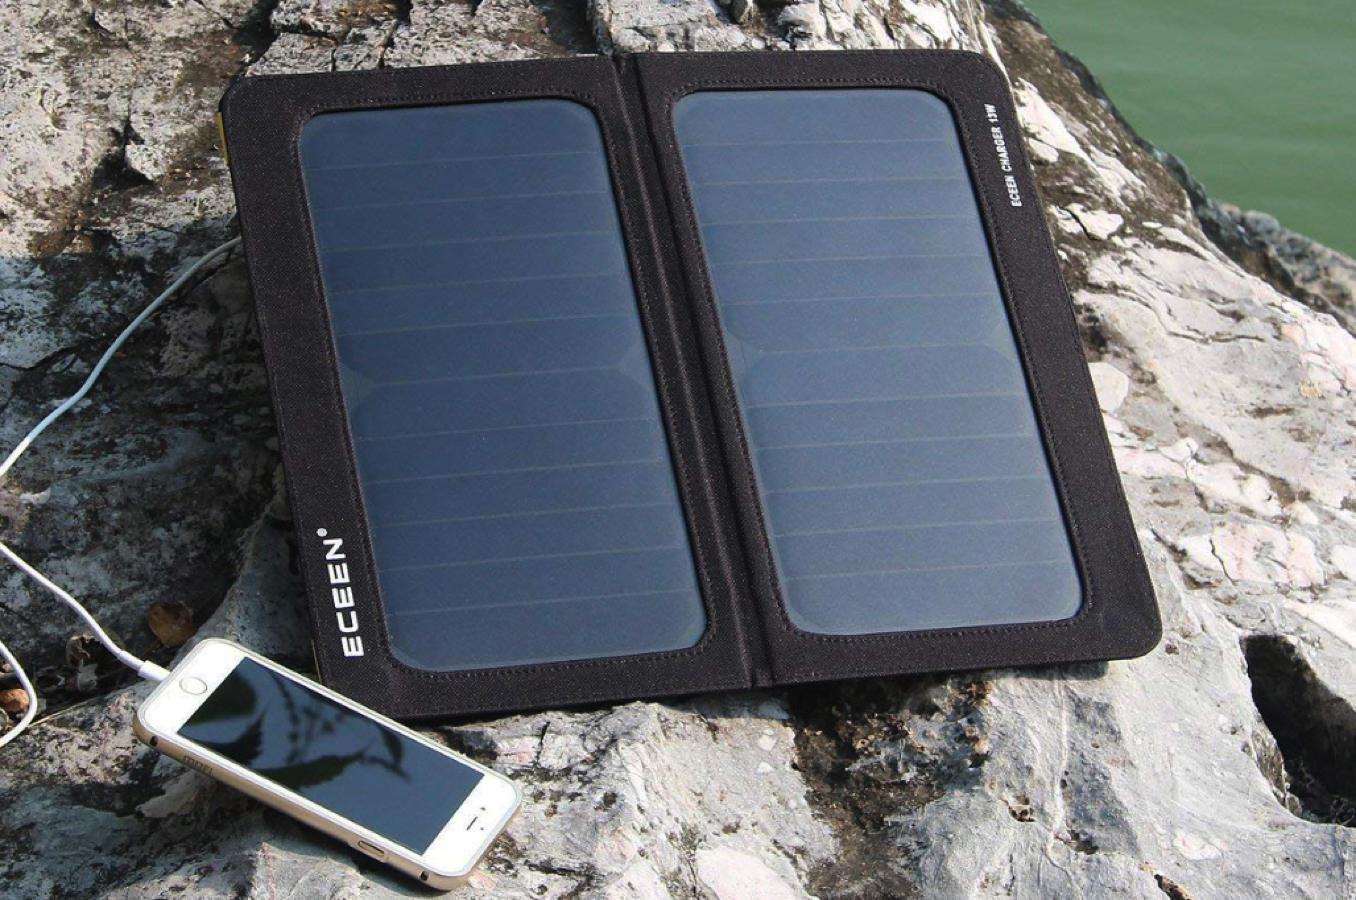 13w foldable solar charger tech gift ideas